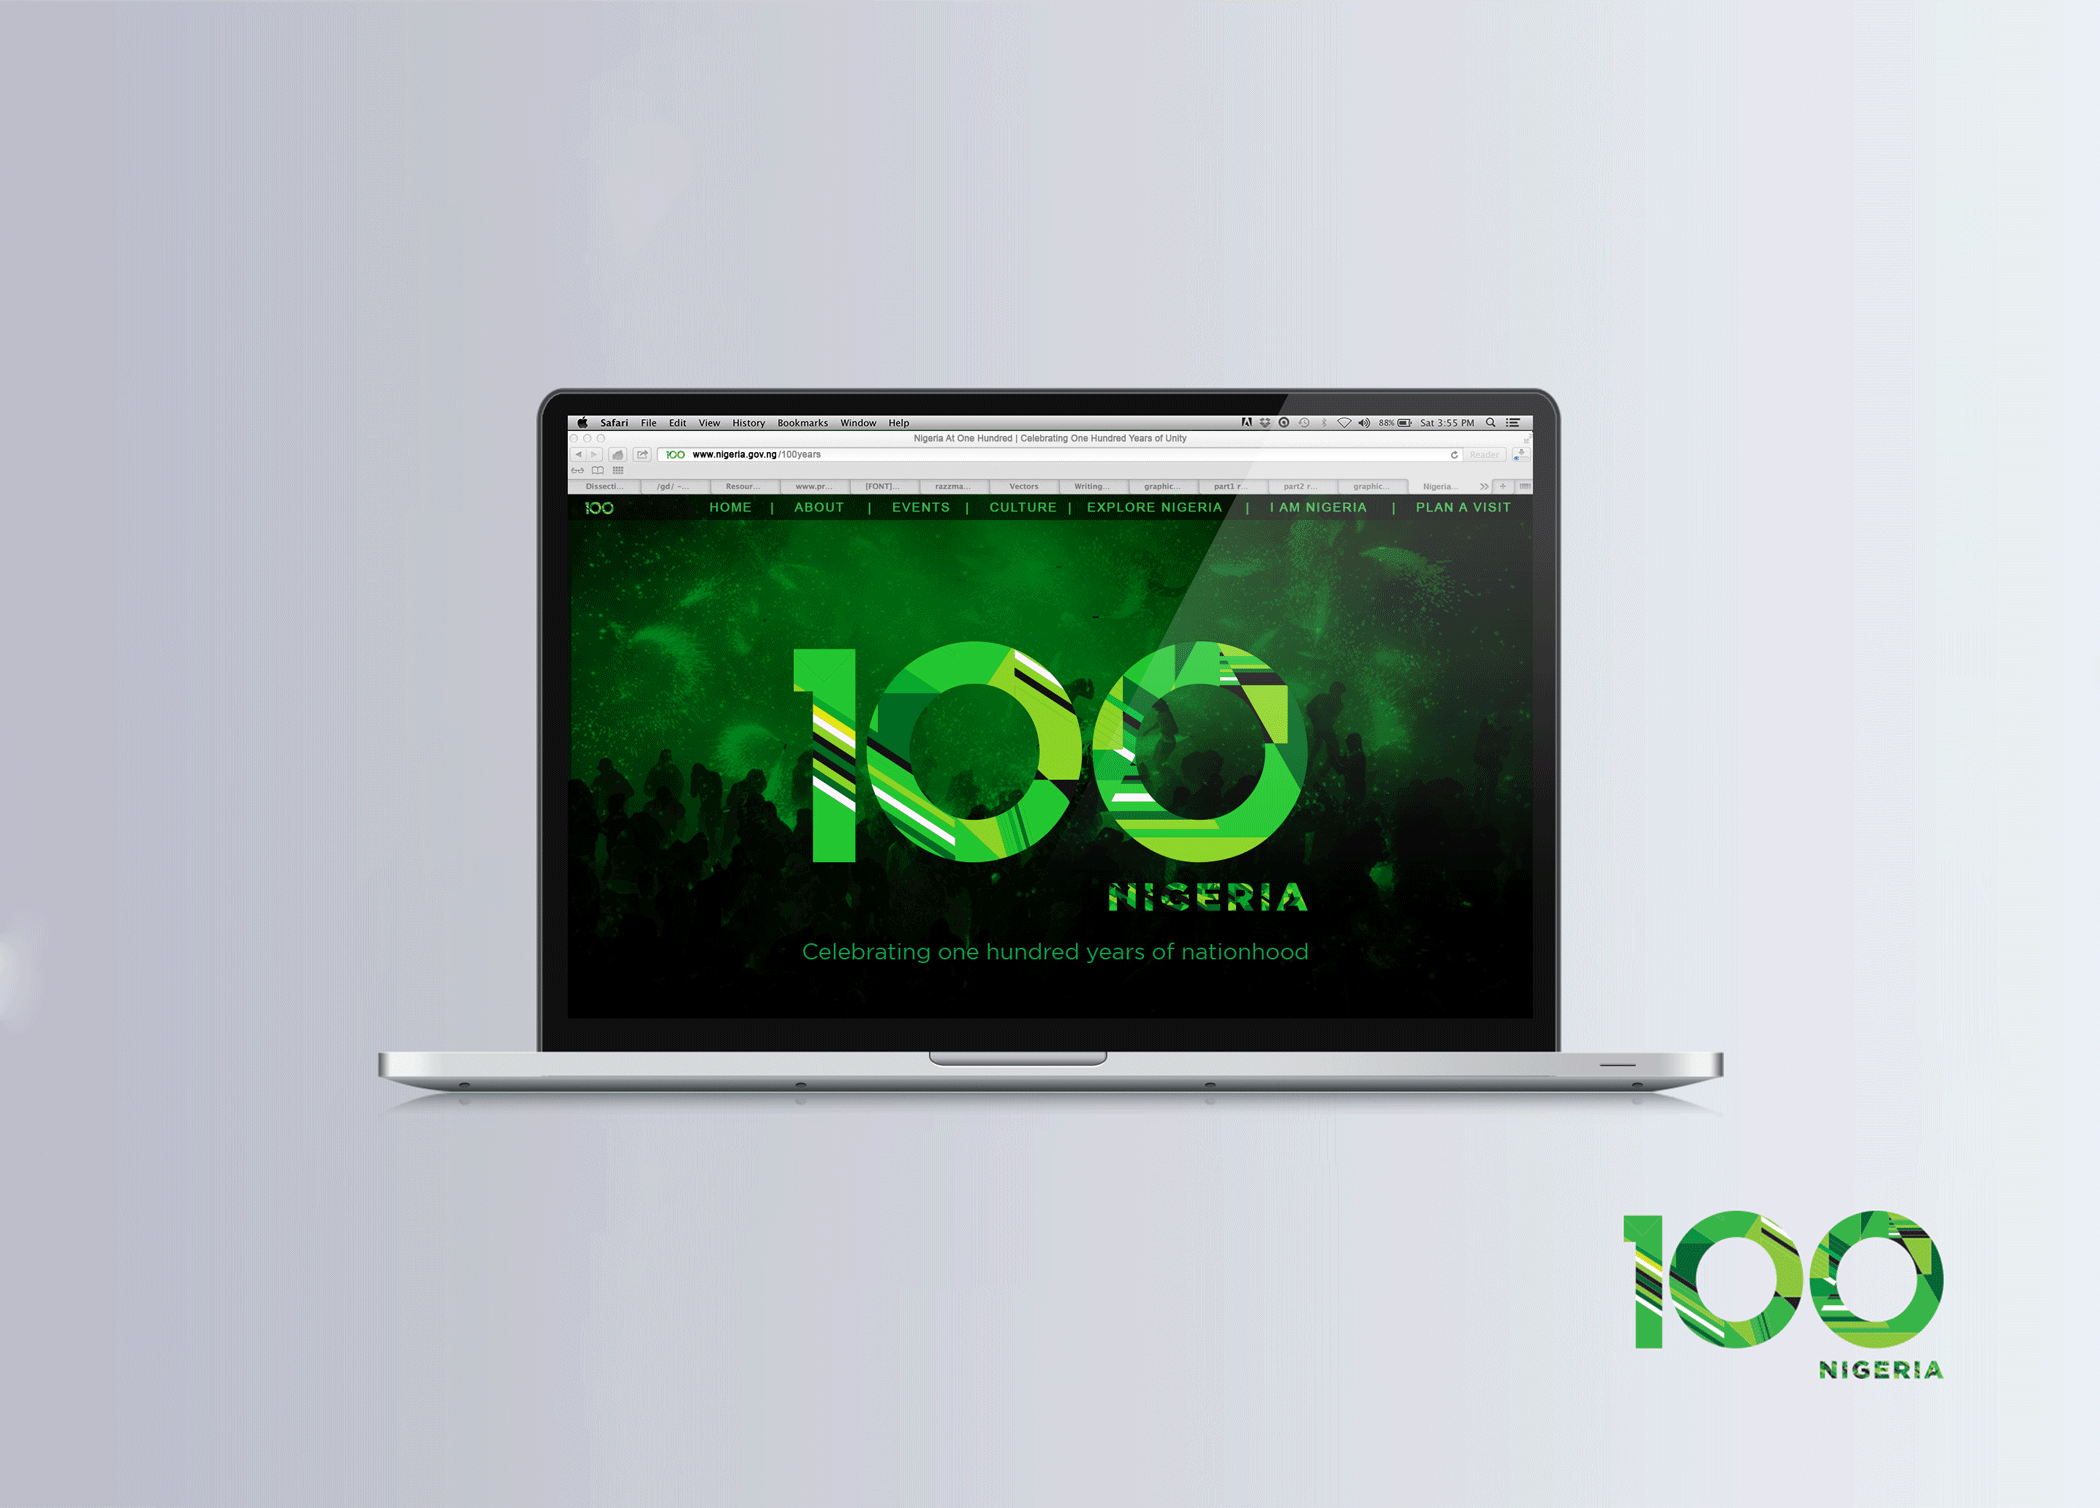 Nigeria at 100 Website Home Page redesign